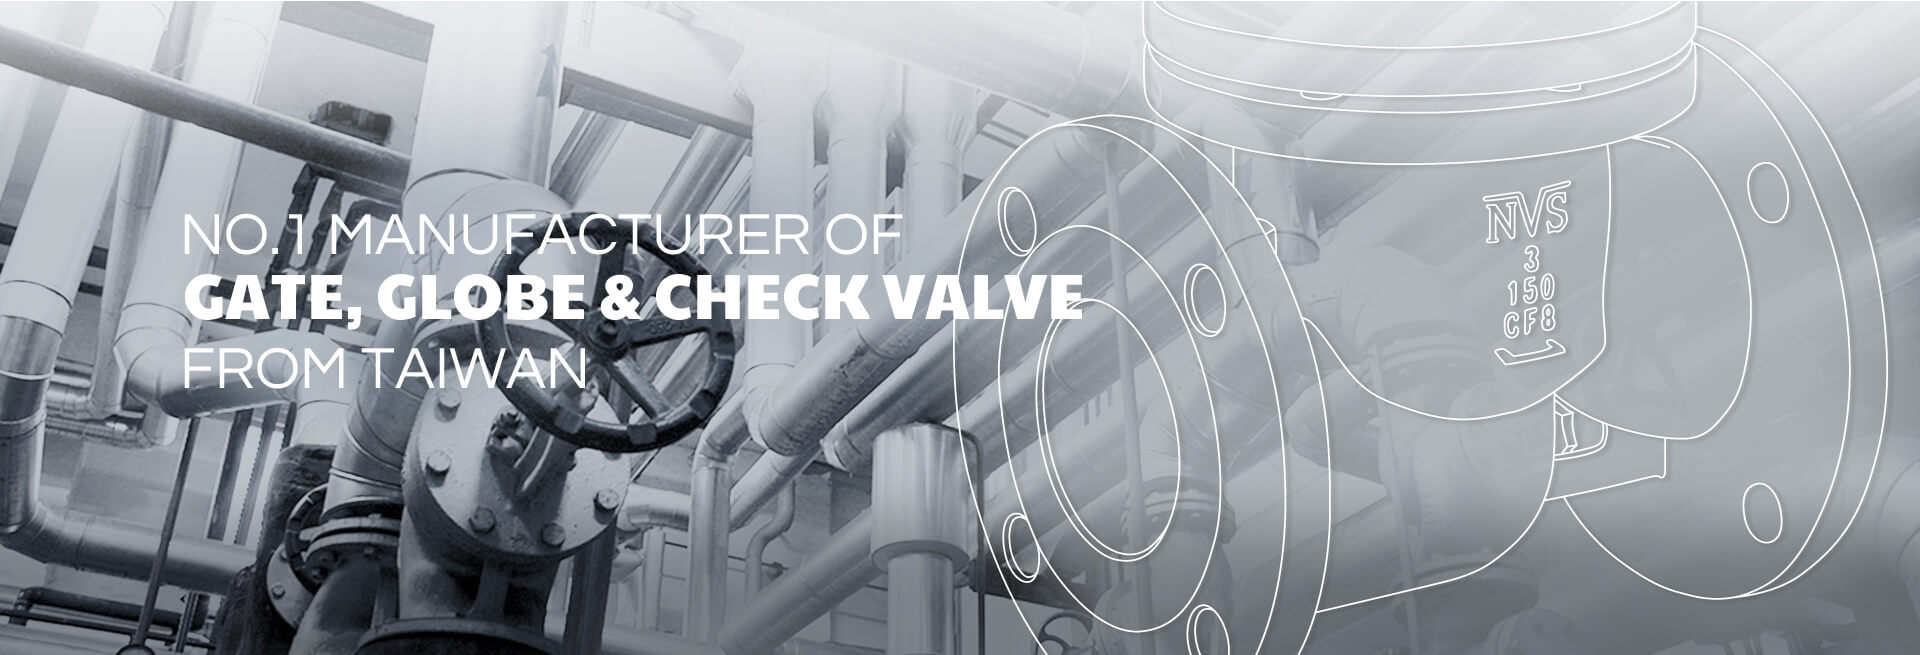 Check Valve Supplier